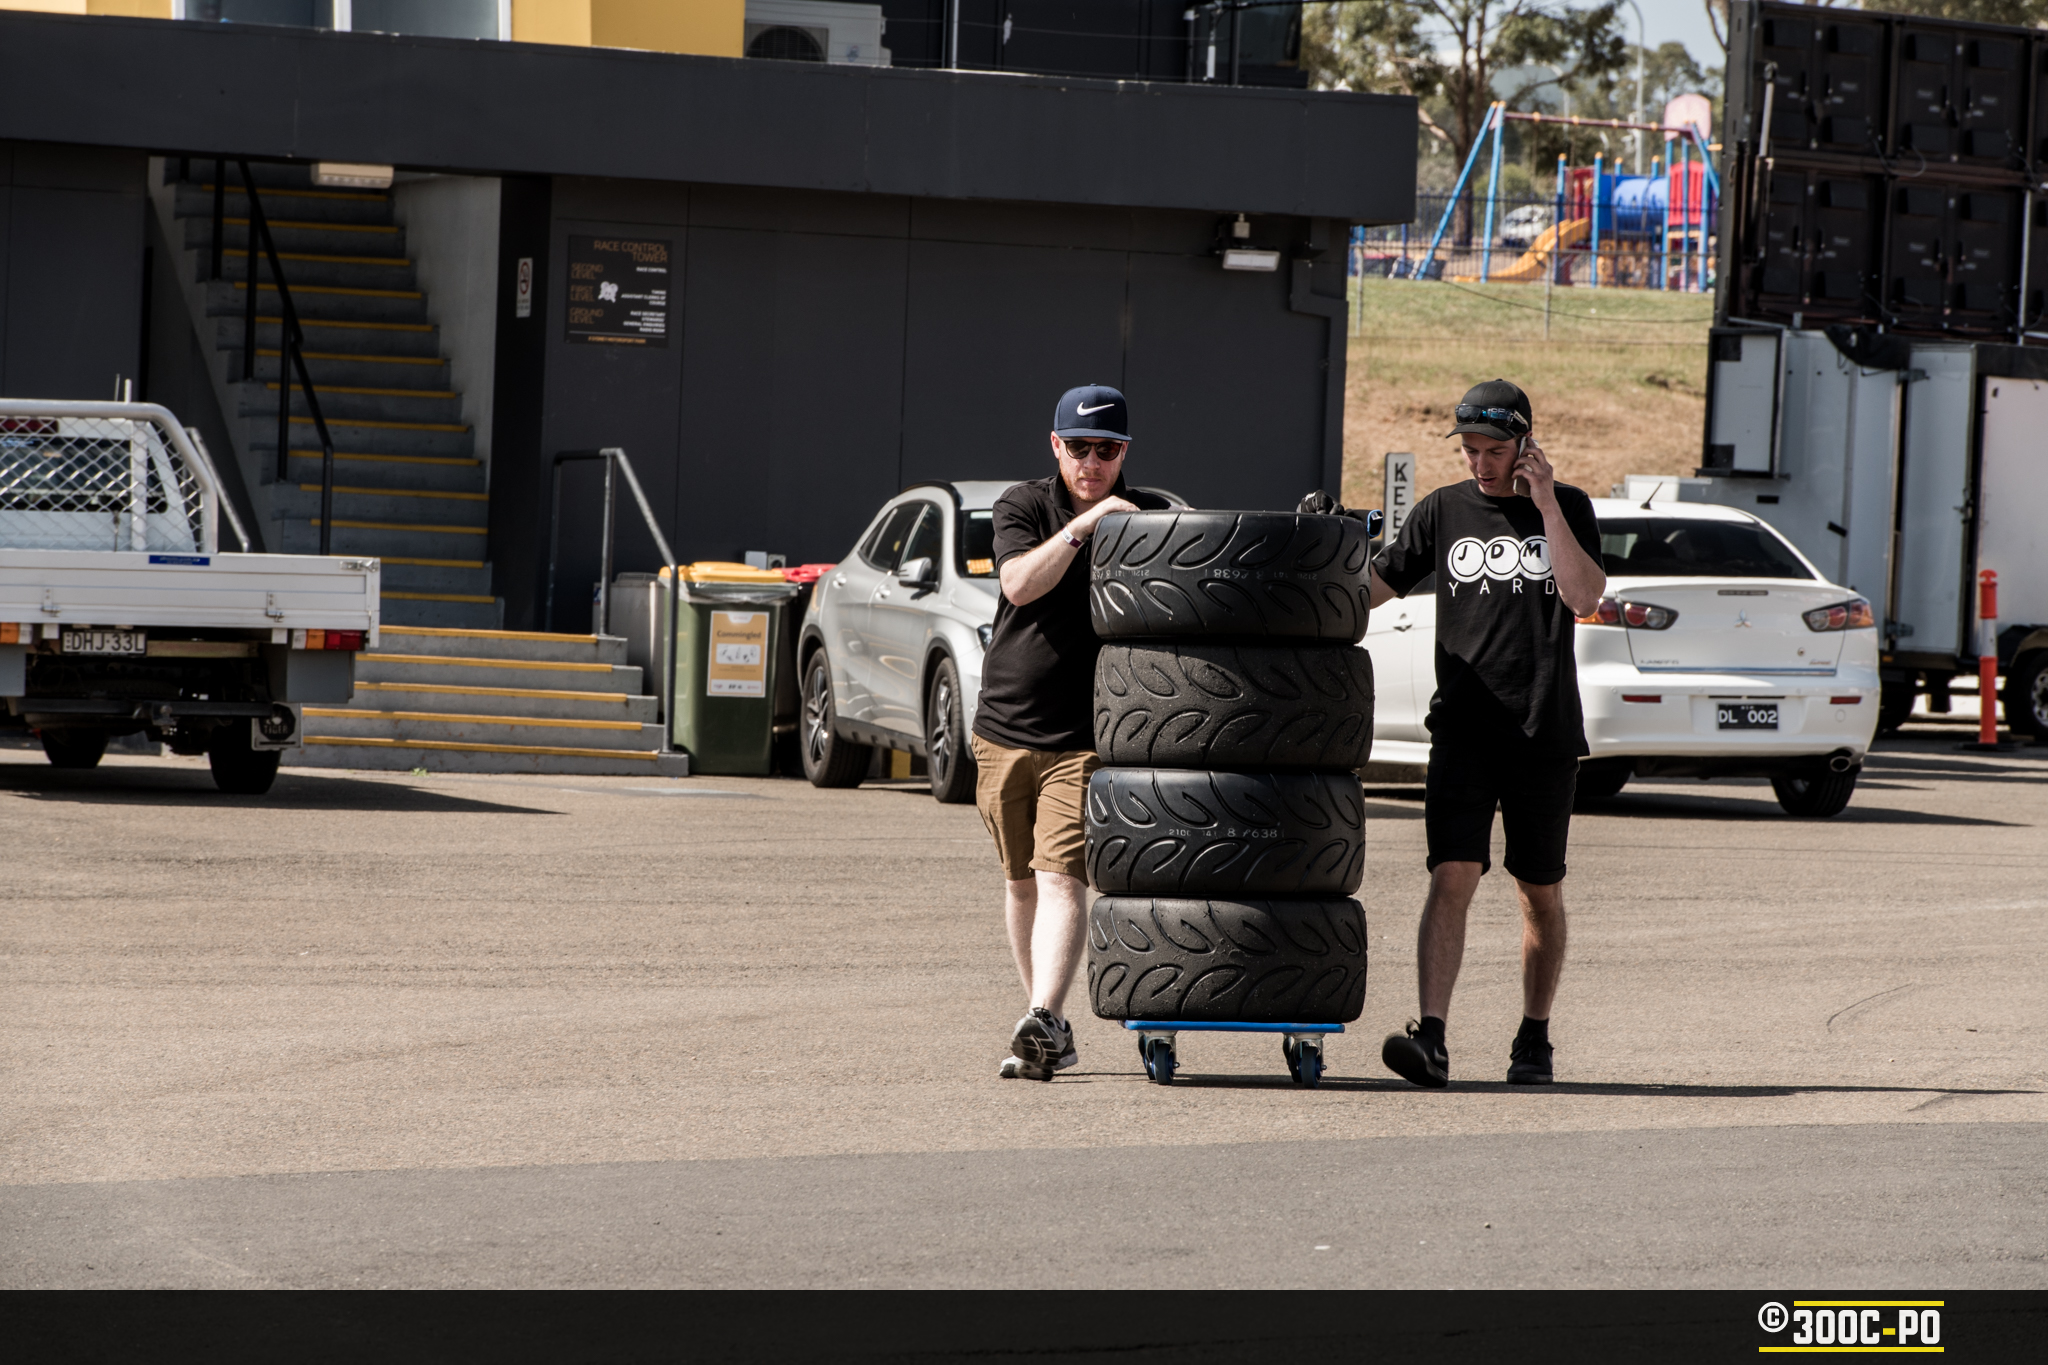 2017-10-13 - WTAC 2017 Day 01 050